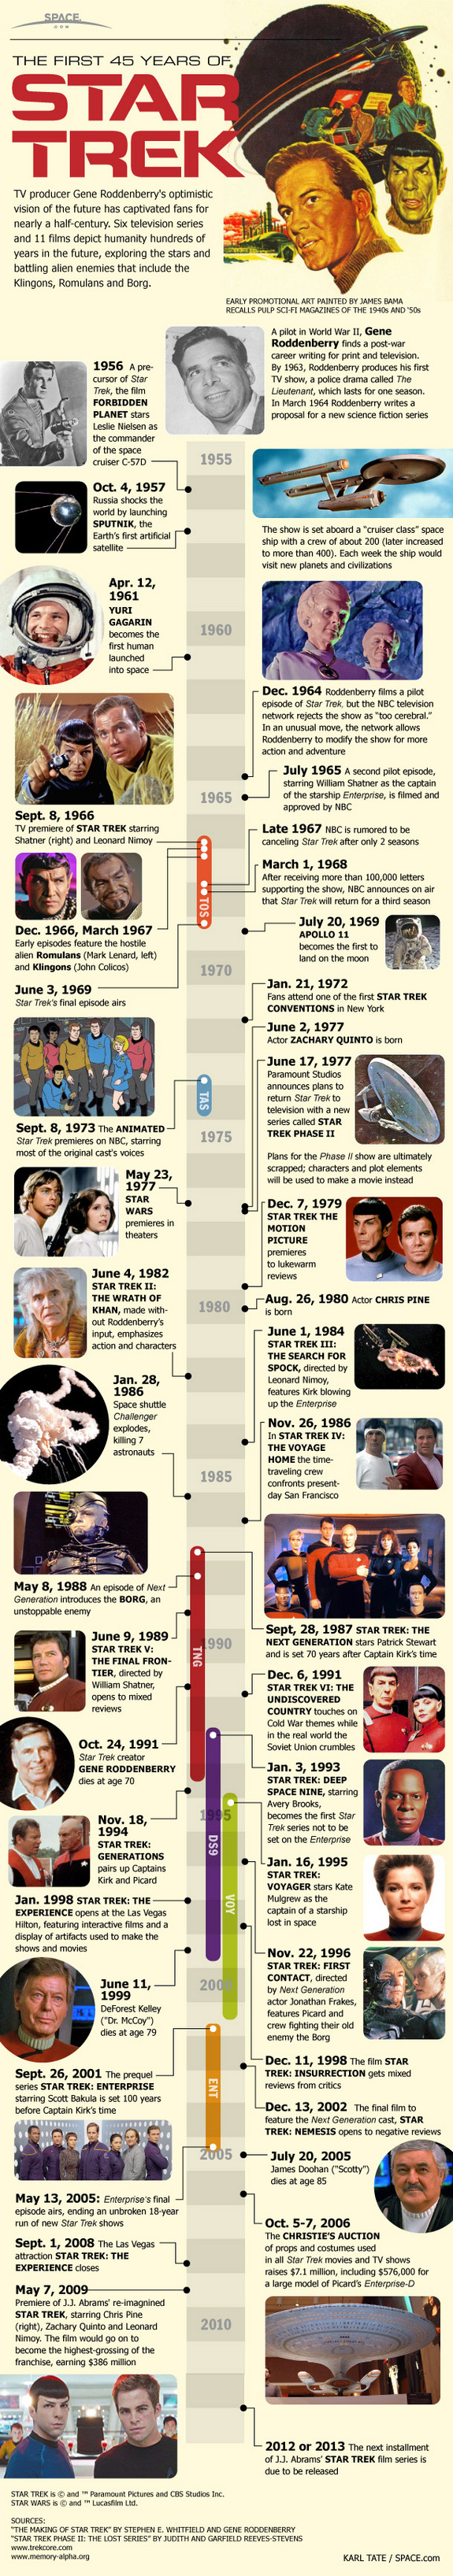 The entire history of Star Trek is in this SPACE.com timeline infographic.